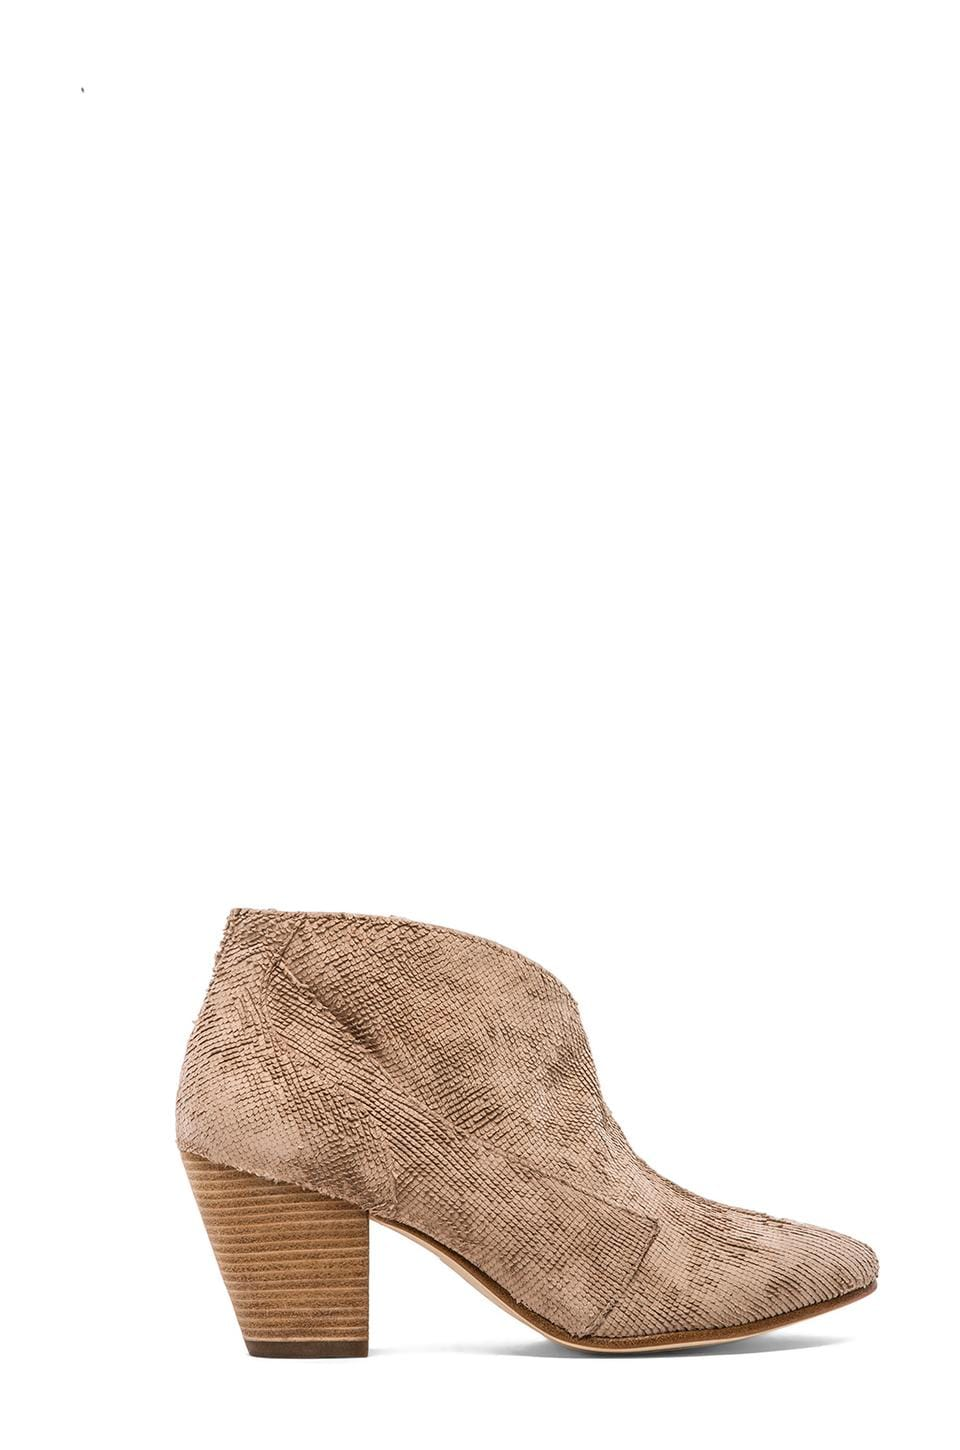 Belle by Sigerson Morrison Yoko Booties in Carta